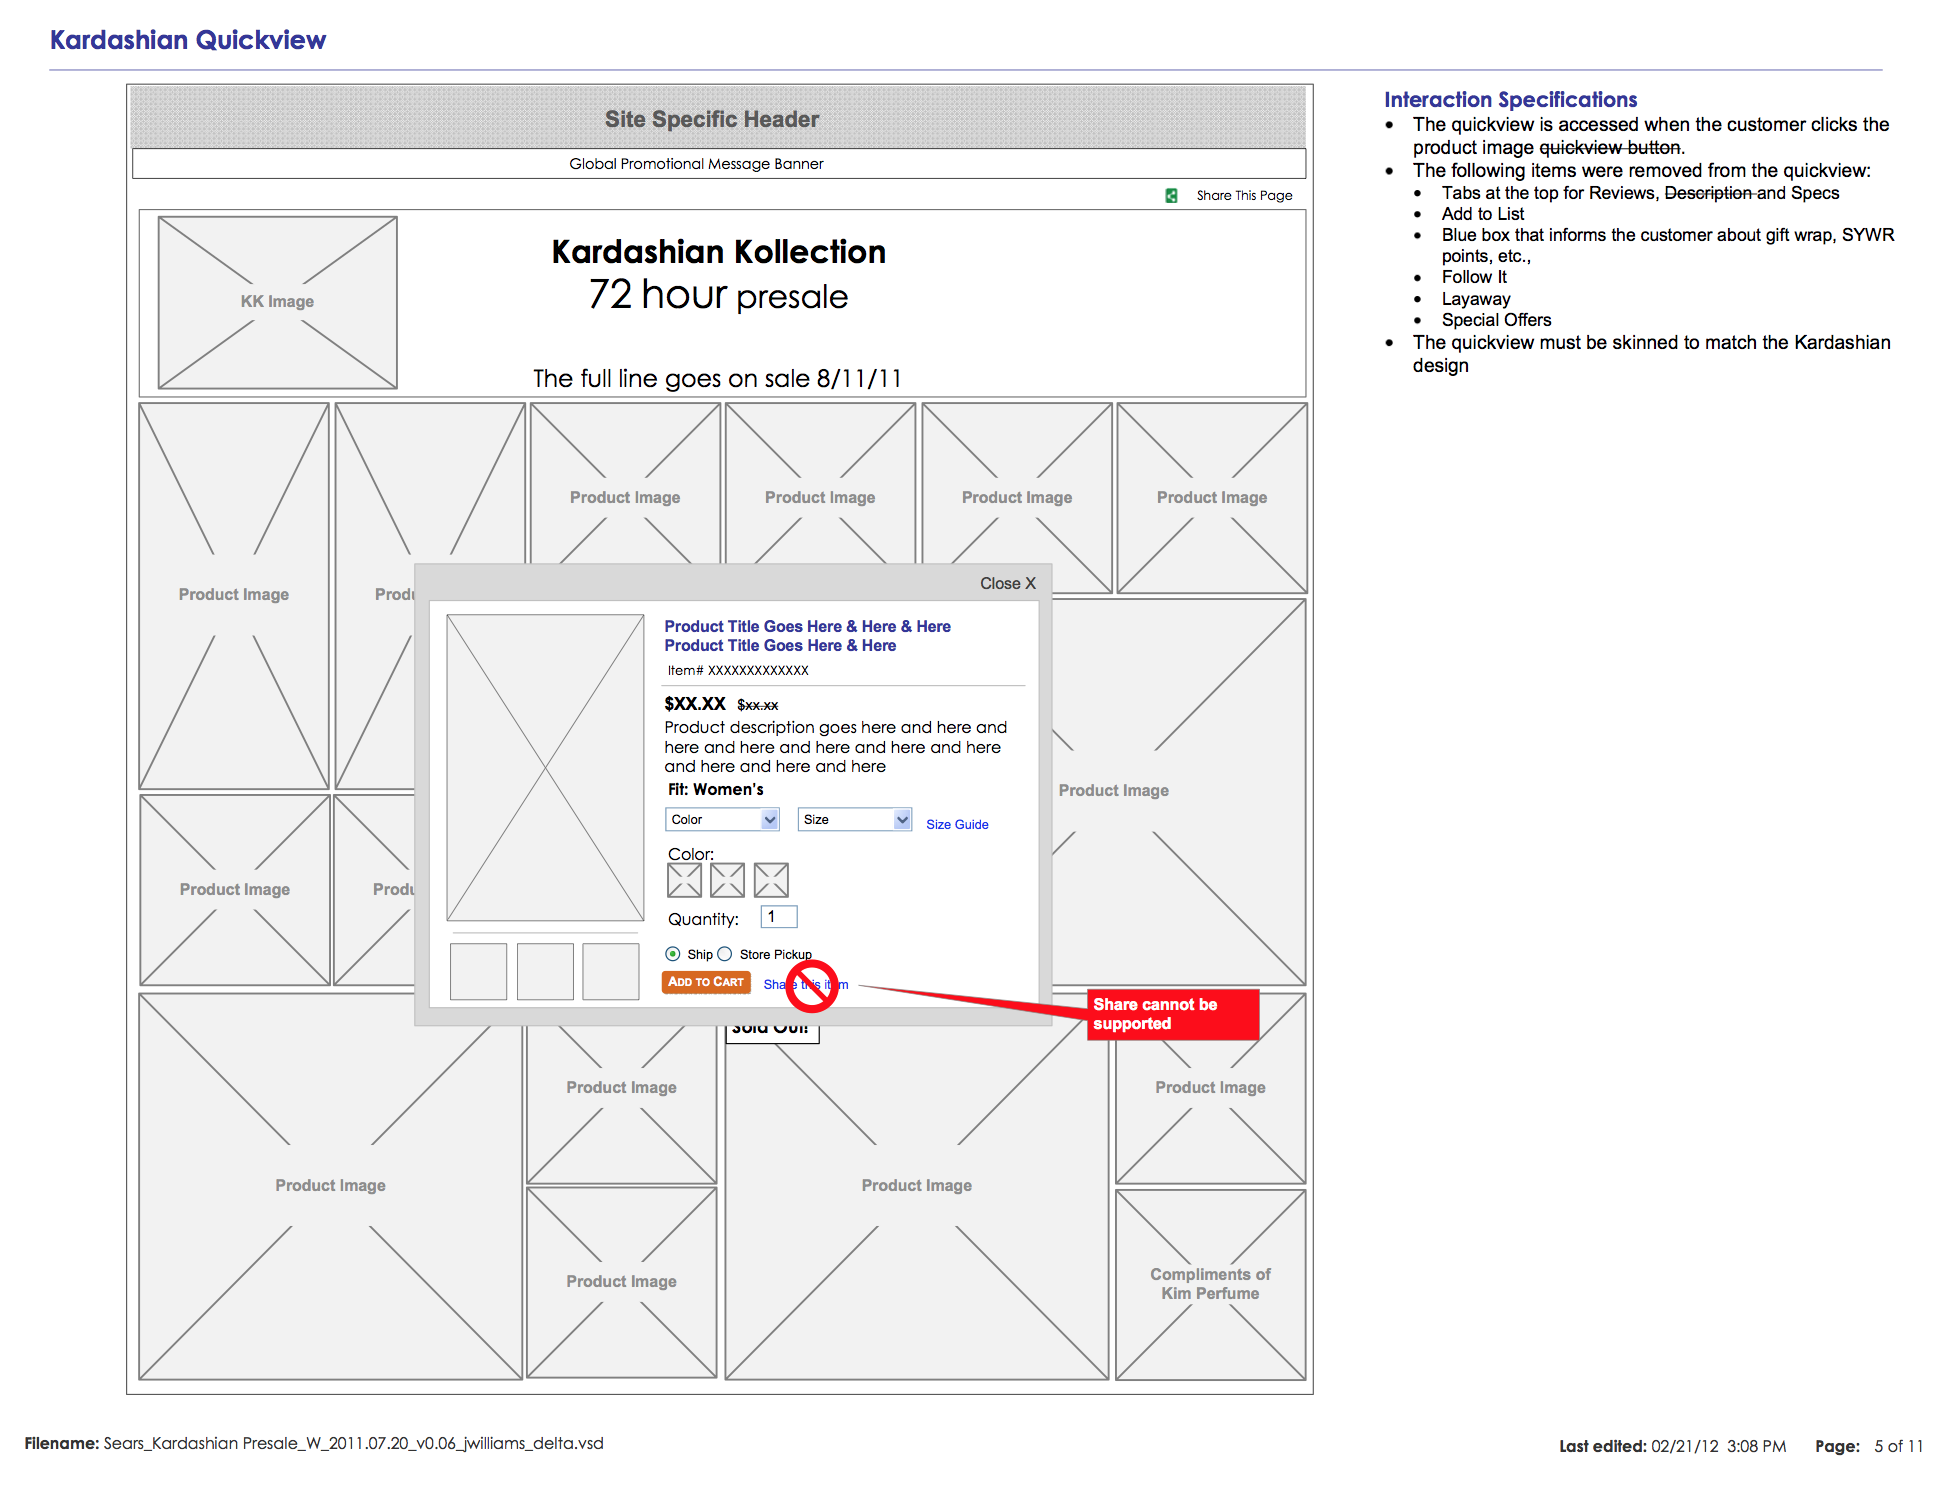 Kardashian Kollection Product Quickview Wireframe